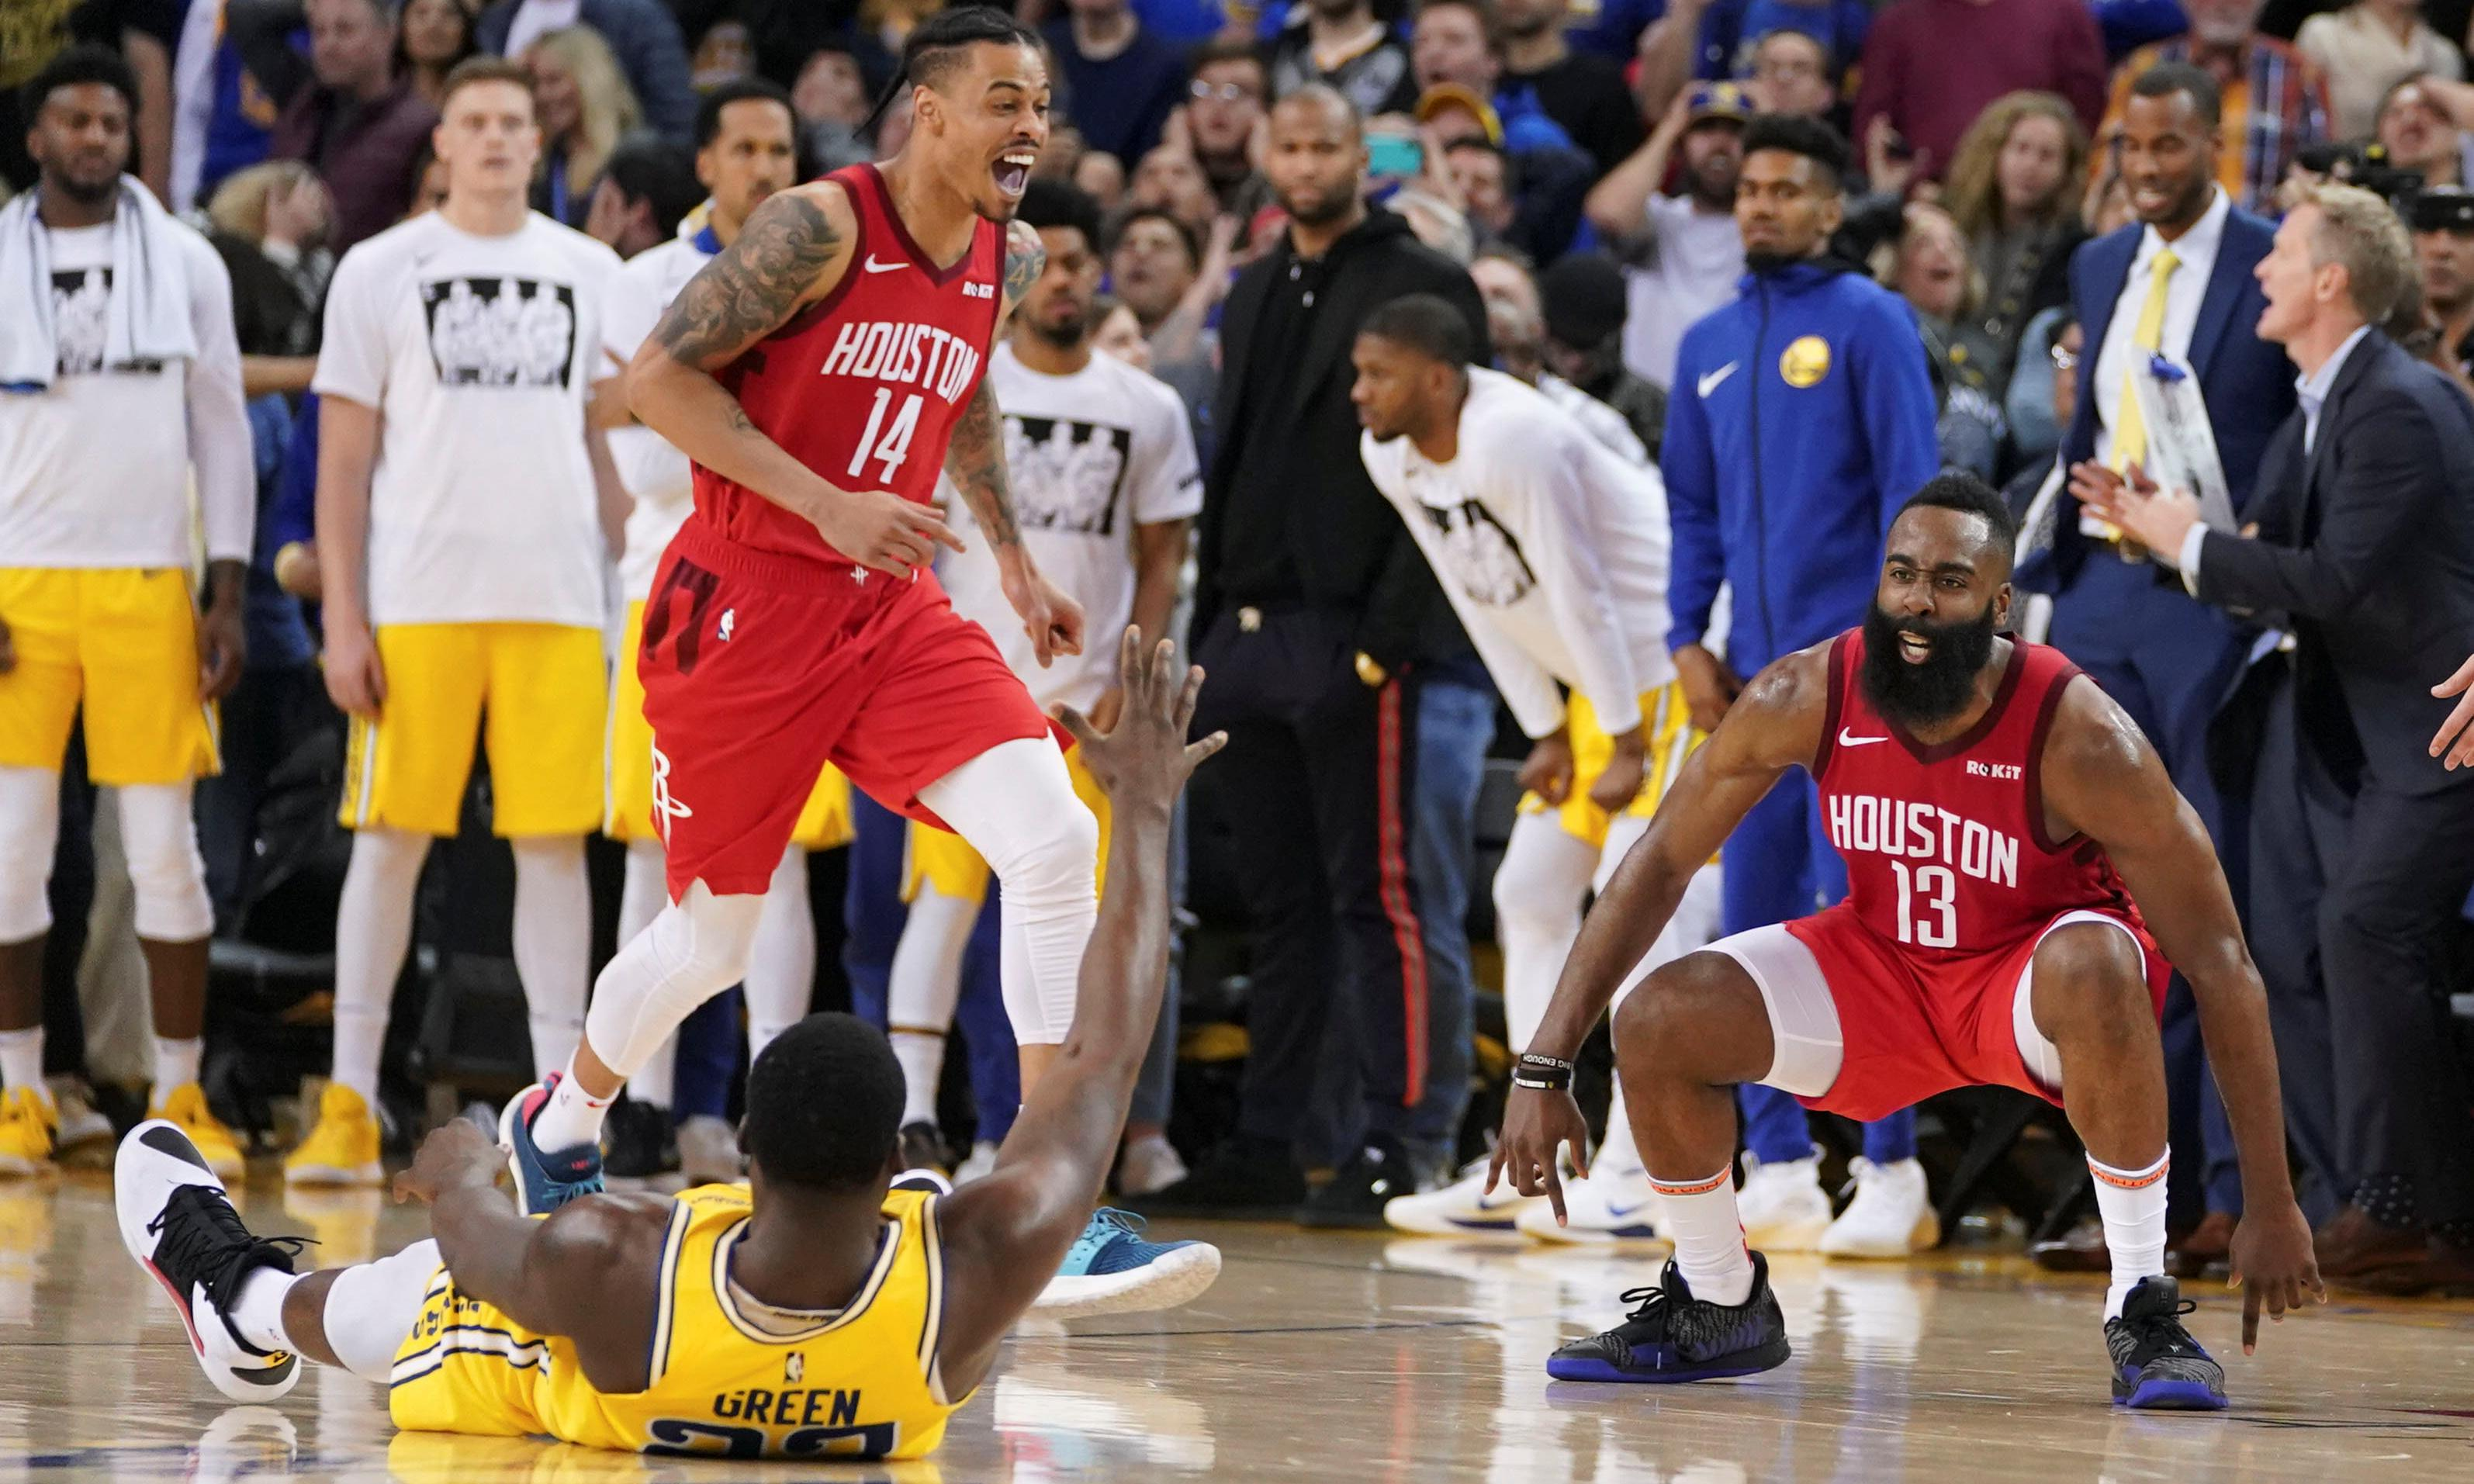 Harden's 'impossible' shot secures Rockets' 20-point comeback against Warriors